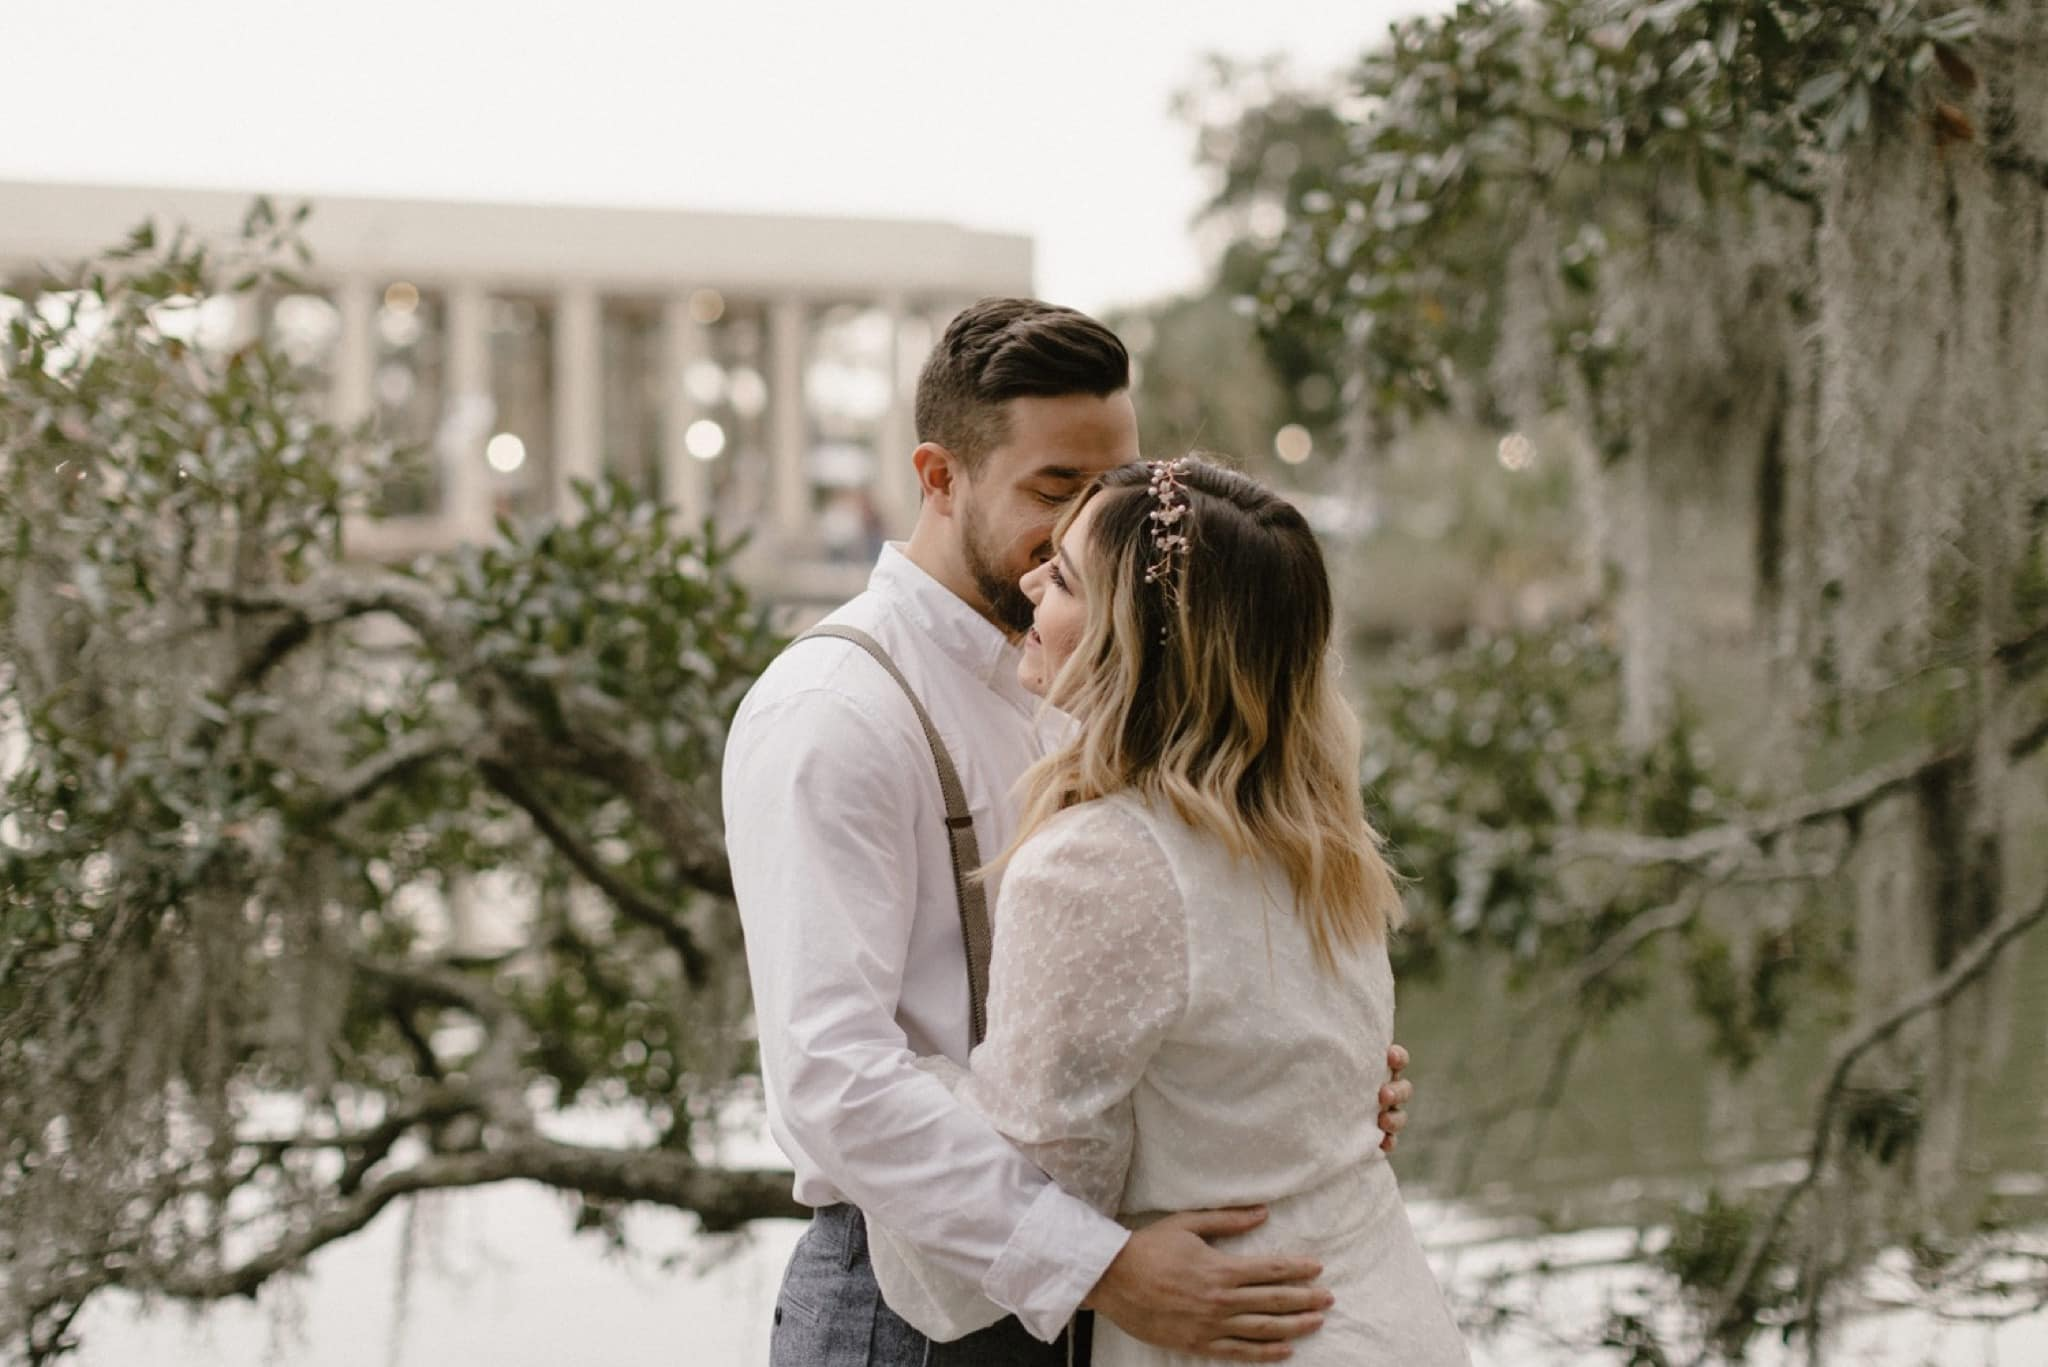 New Orleans Elopement Guide